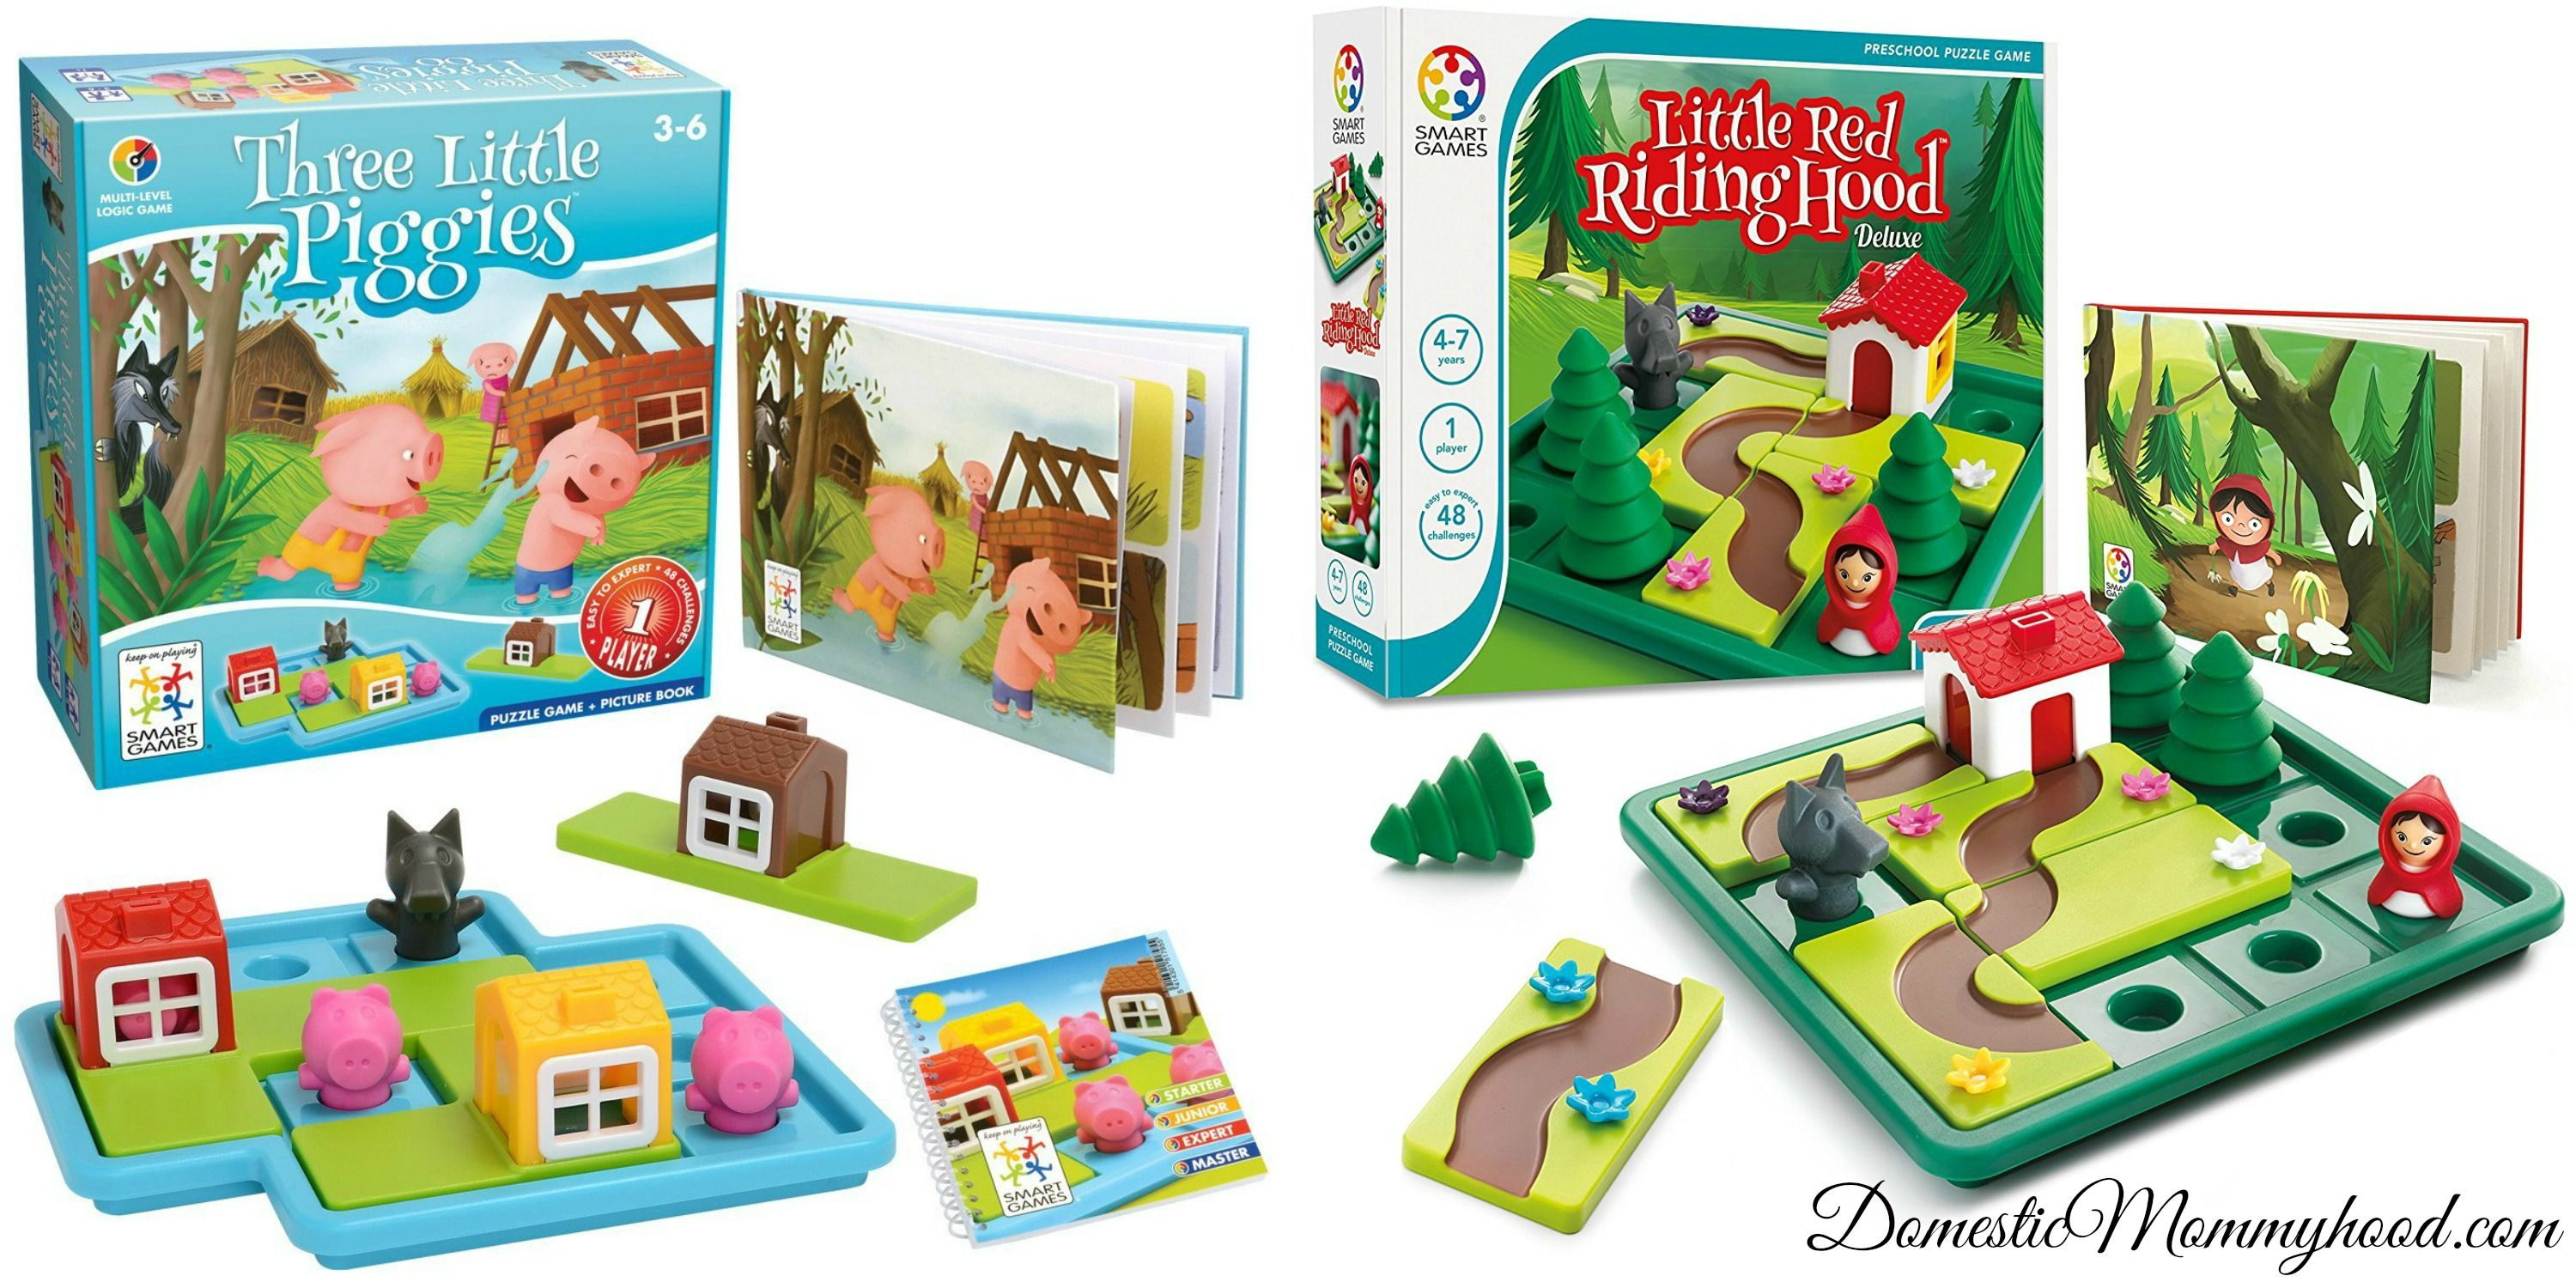 25 Hot Preschool Stem Toys For Learning While They Play